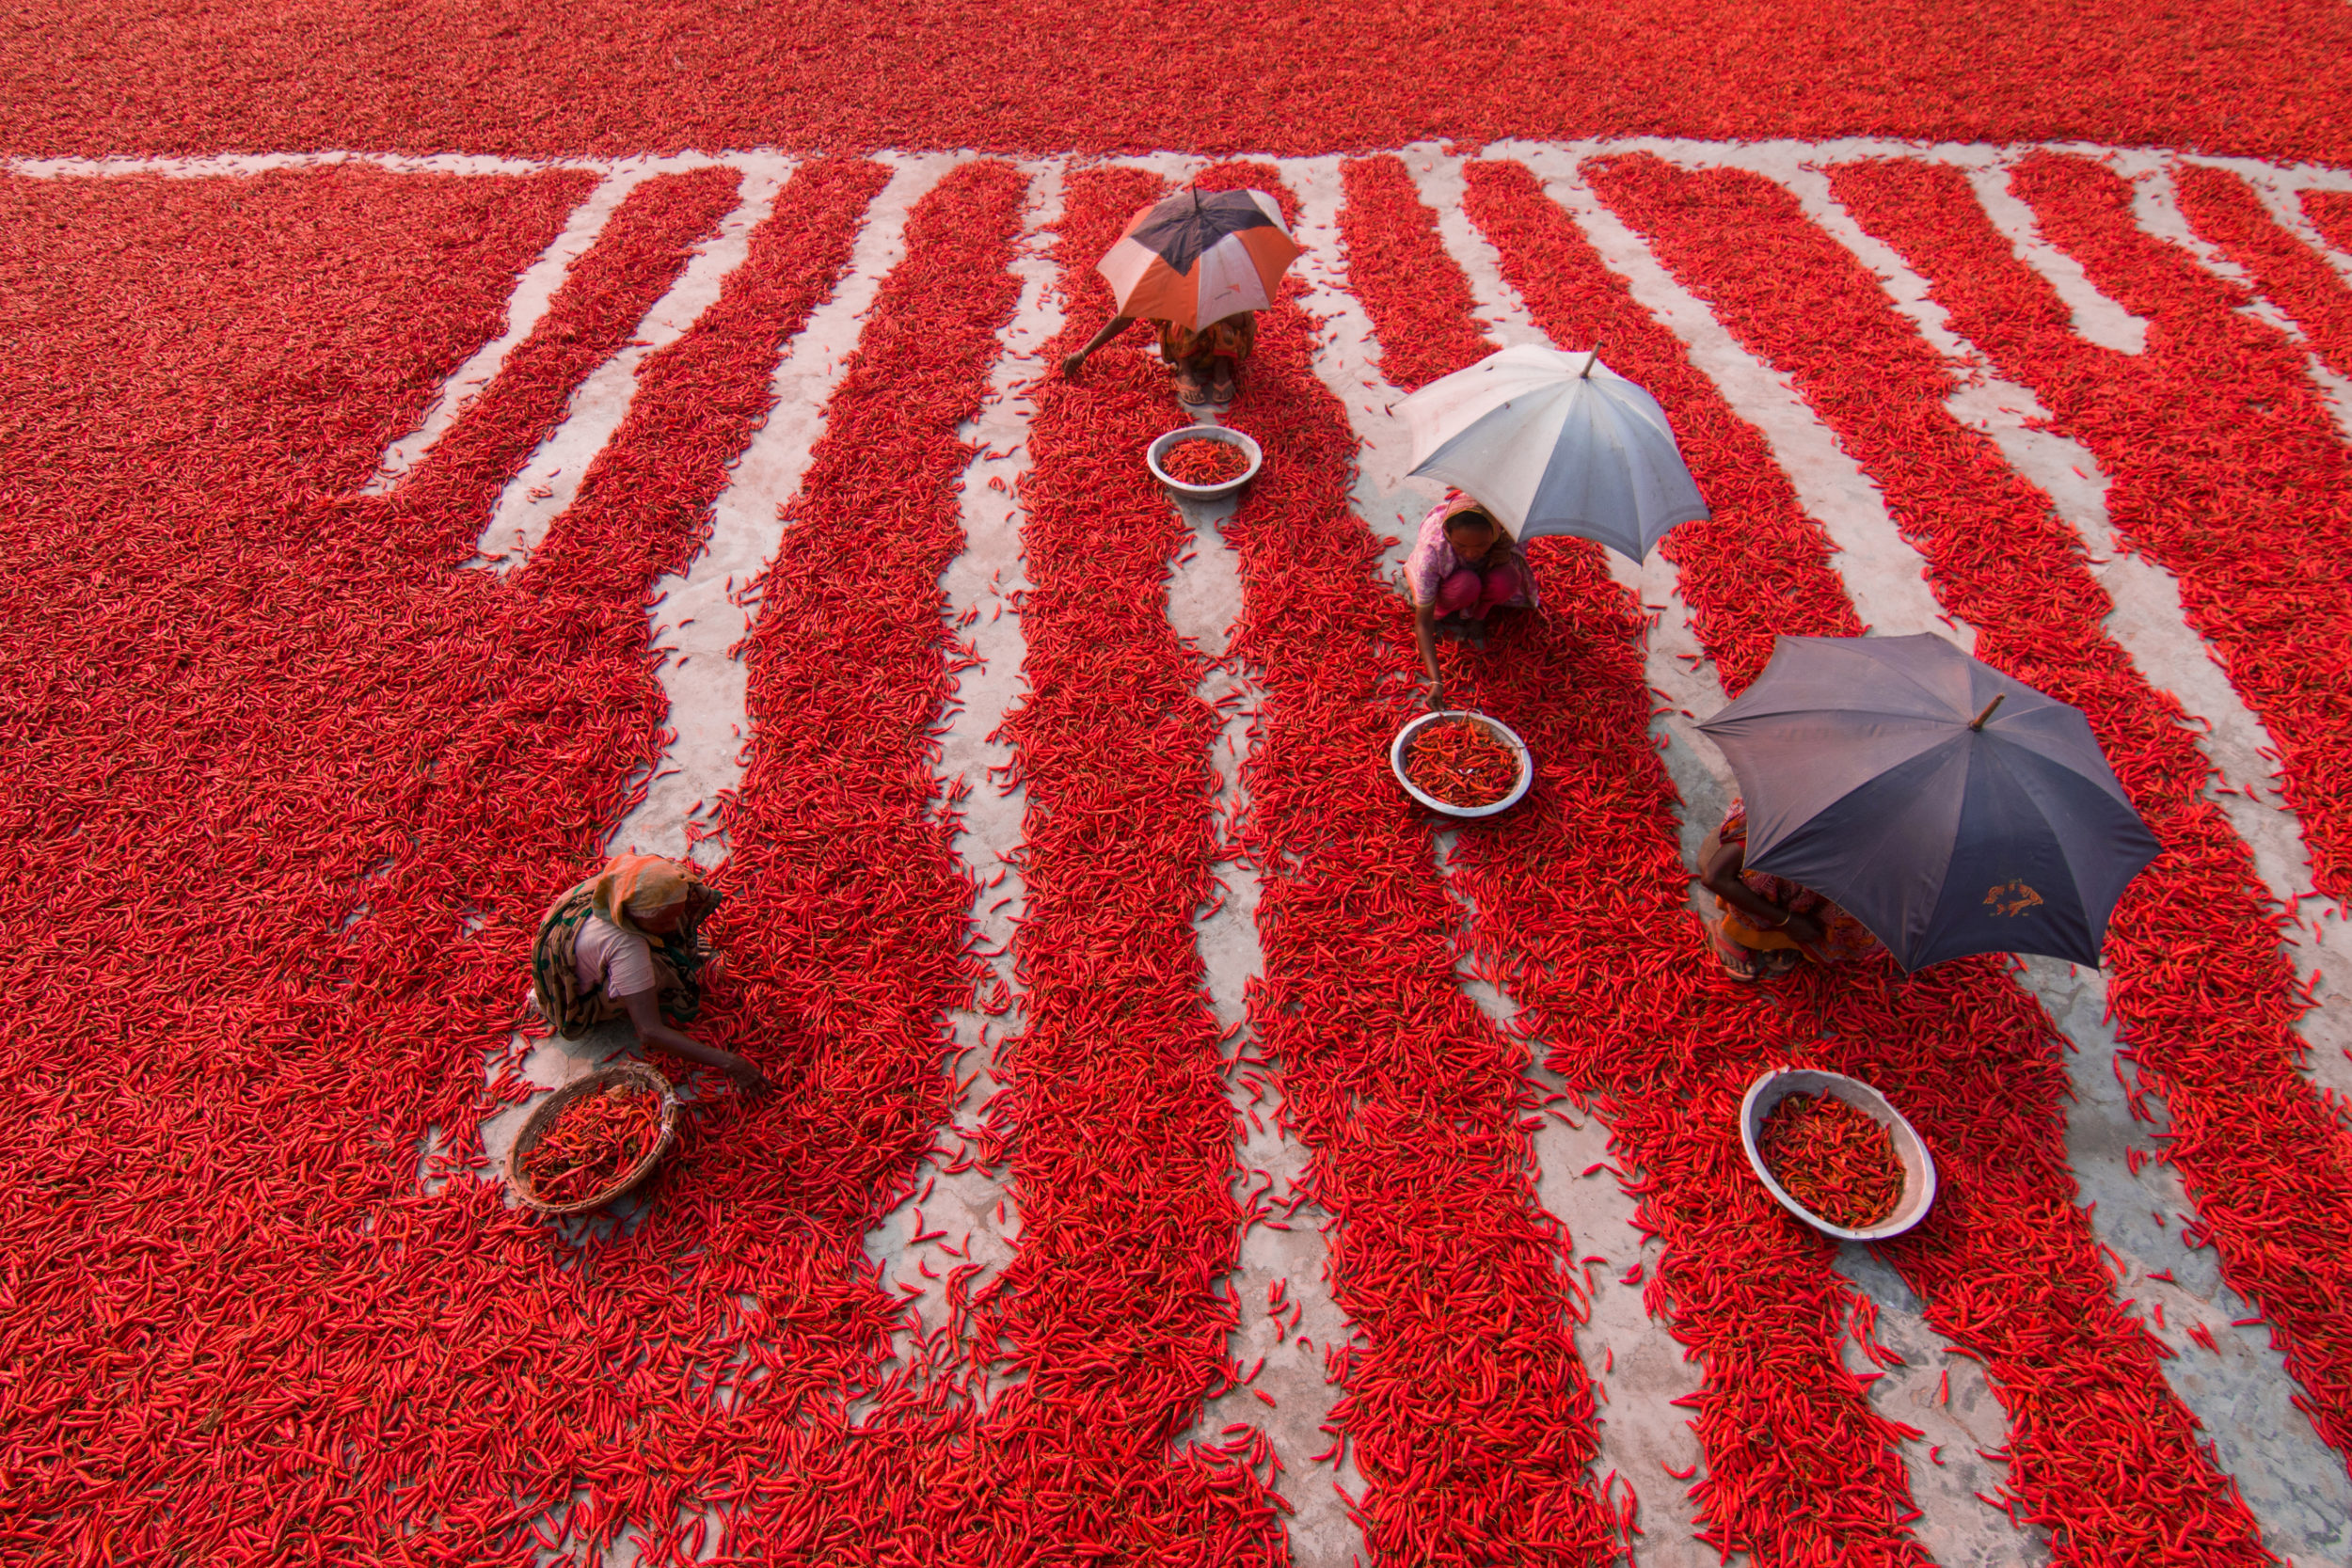 """Red Chili Pepper Pickers"". Countless chili peppers surround laborers in the Bogra district in the north of Bangladesh."